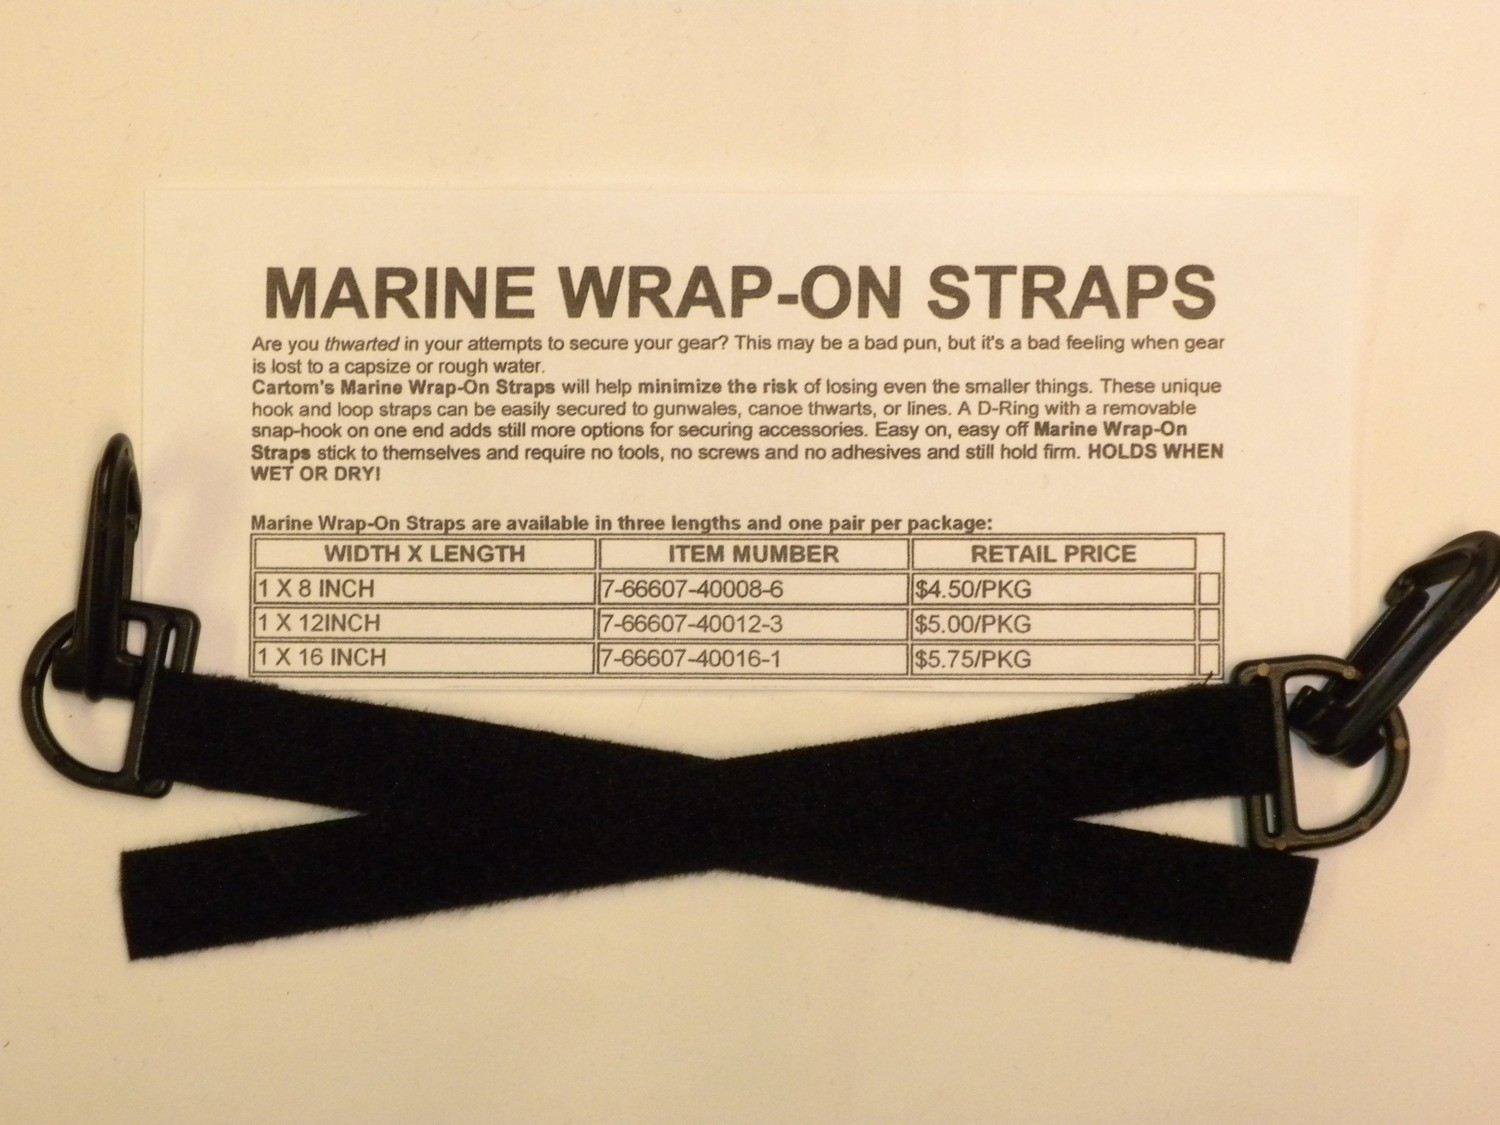 Marine Wrap-On Straps